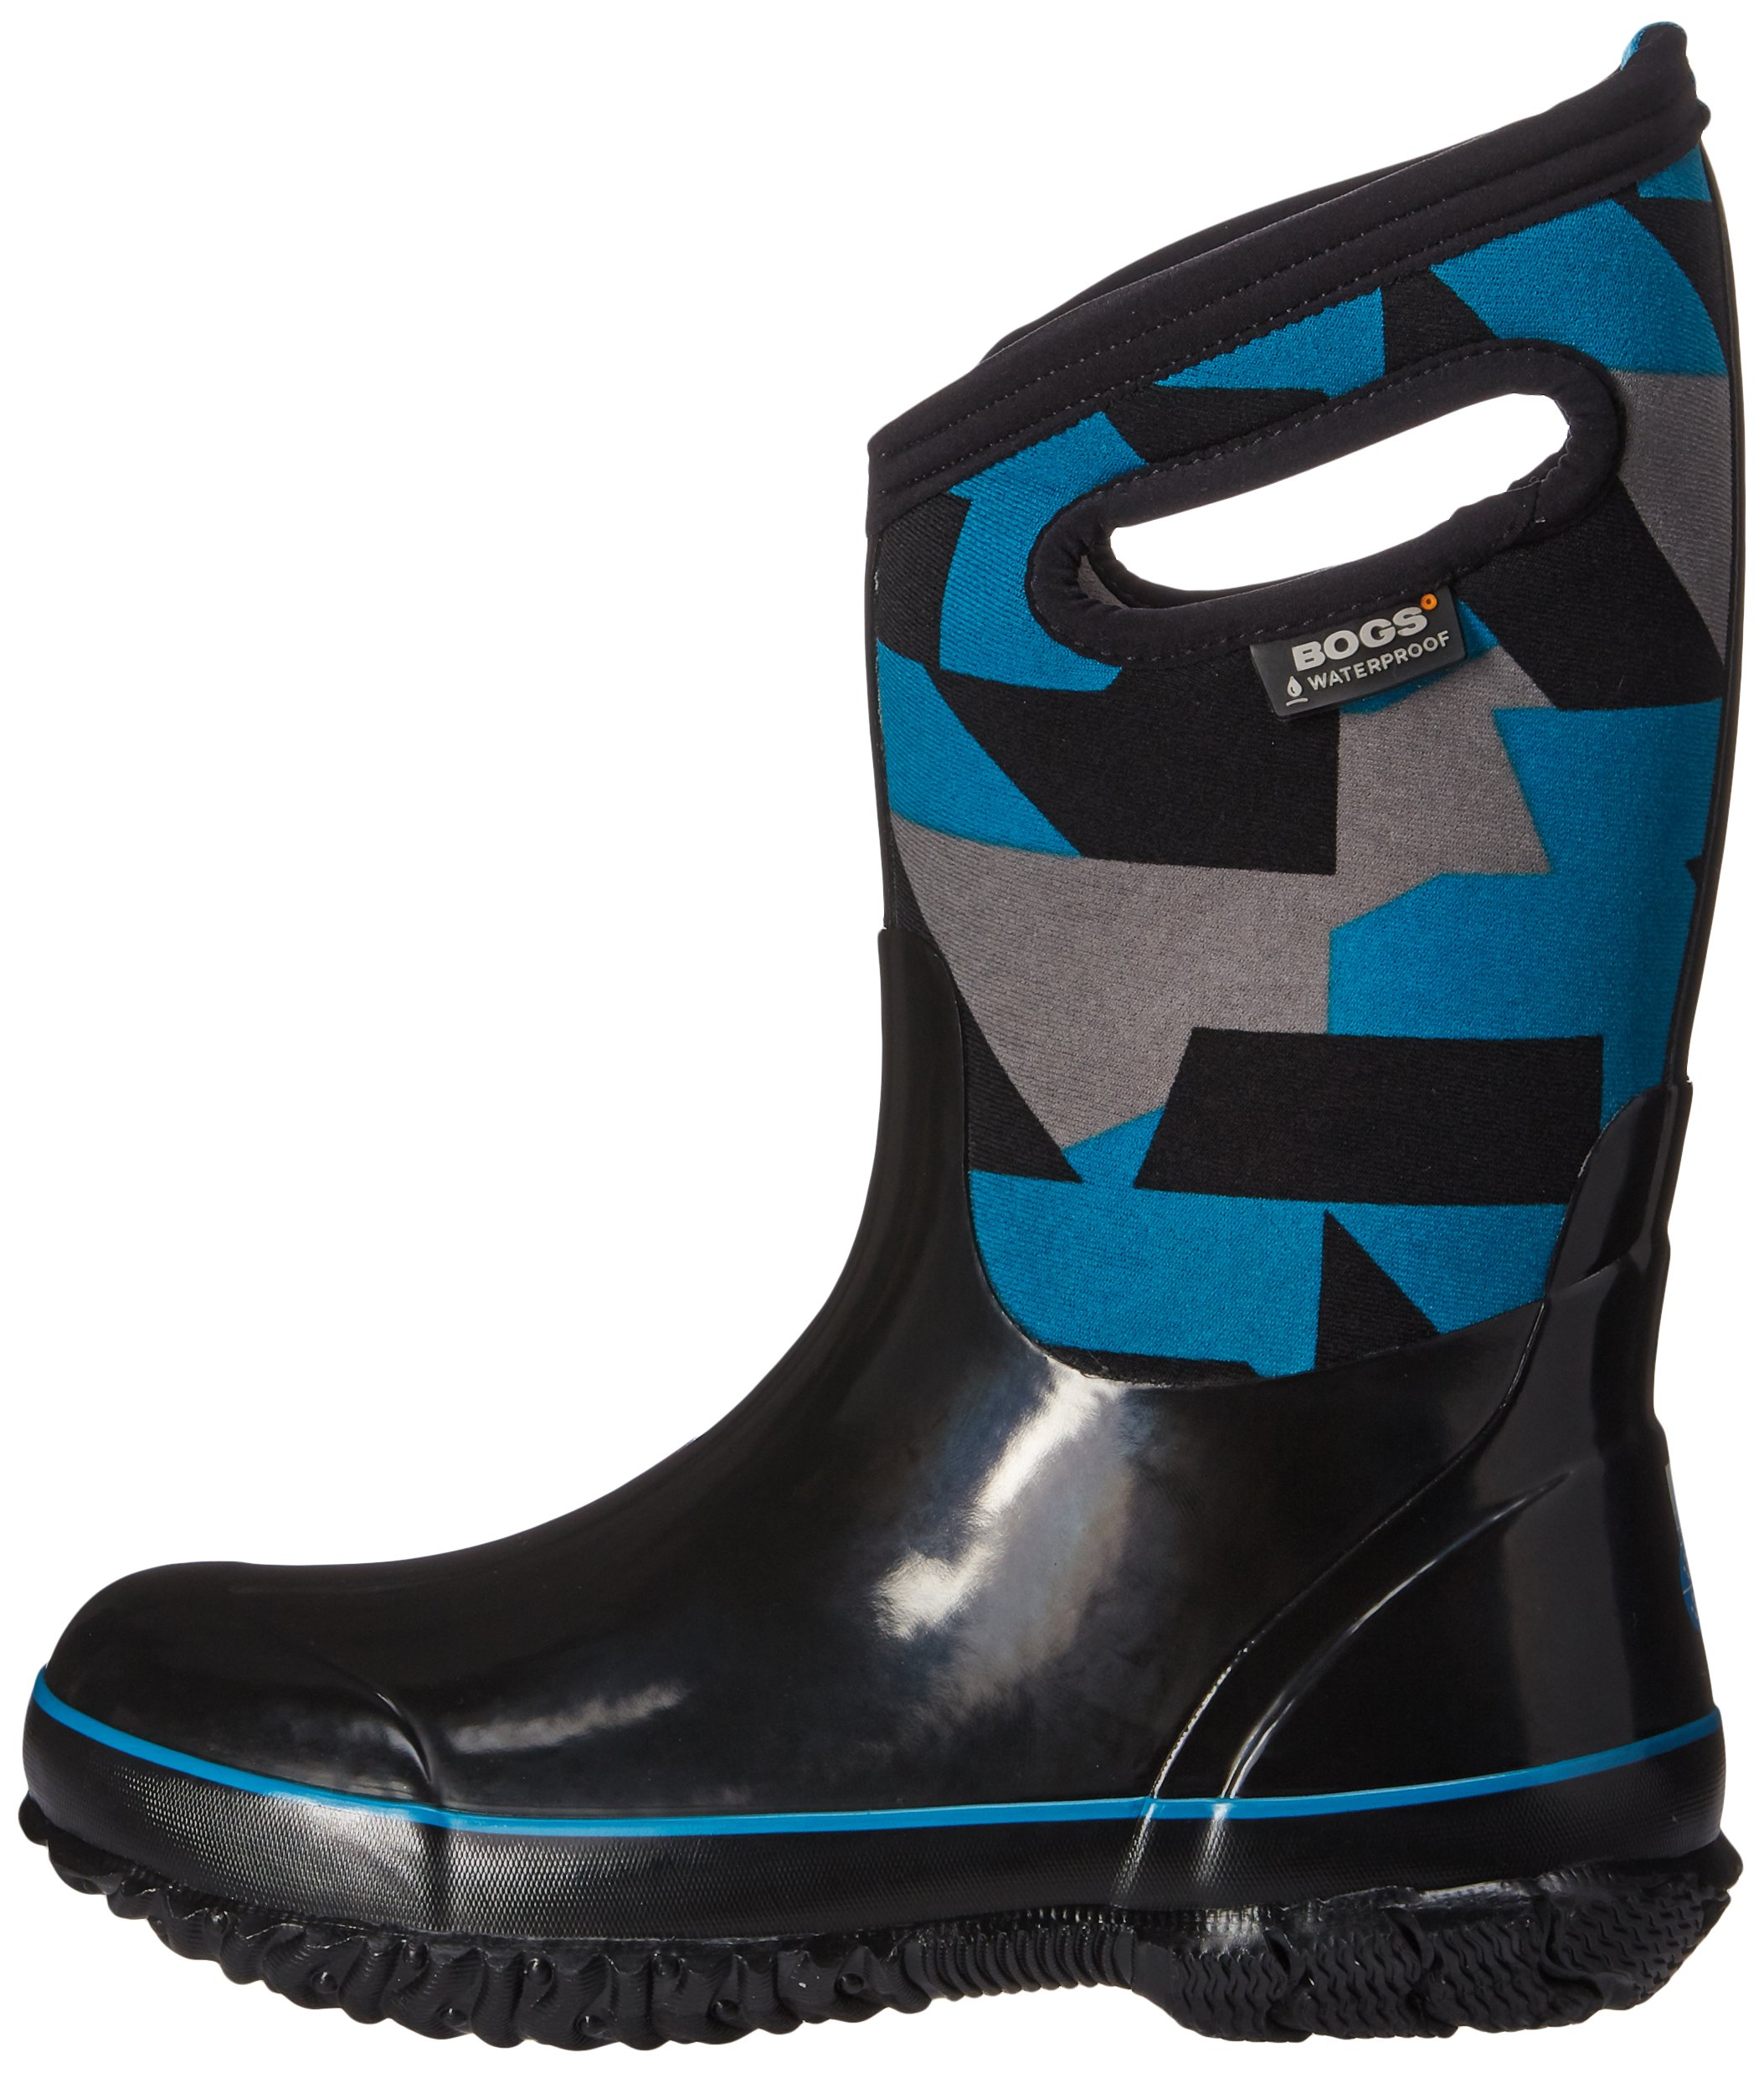 Bogs Kids' Classic High Waterproof Insulated Rubber